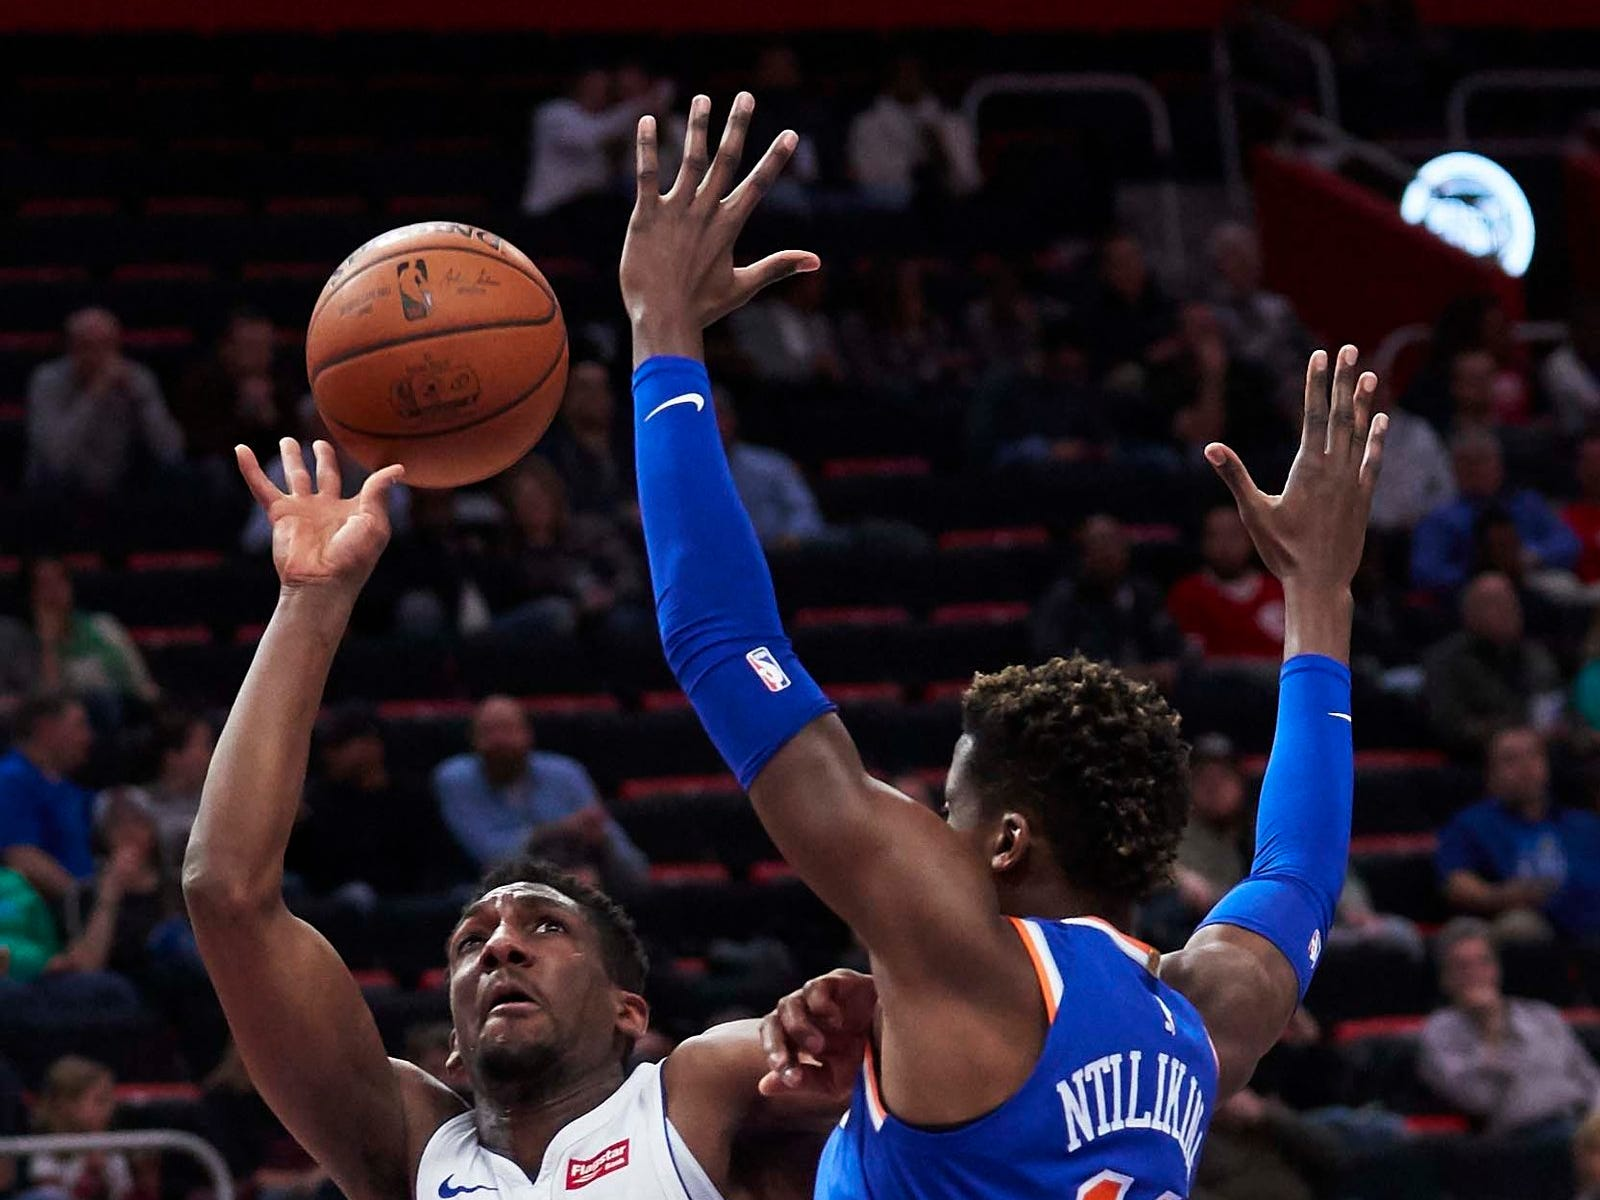 Detroit Pistons guard Langston Galloway (9) shoots defended by New York Knicks guard Frank Ntilikina (11) in the first half at Little Caesars Arena.